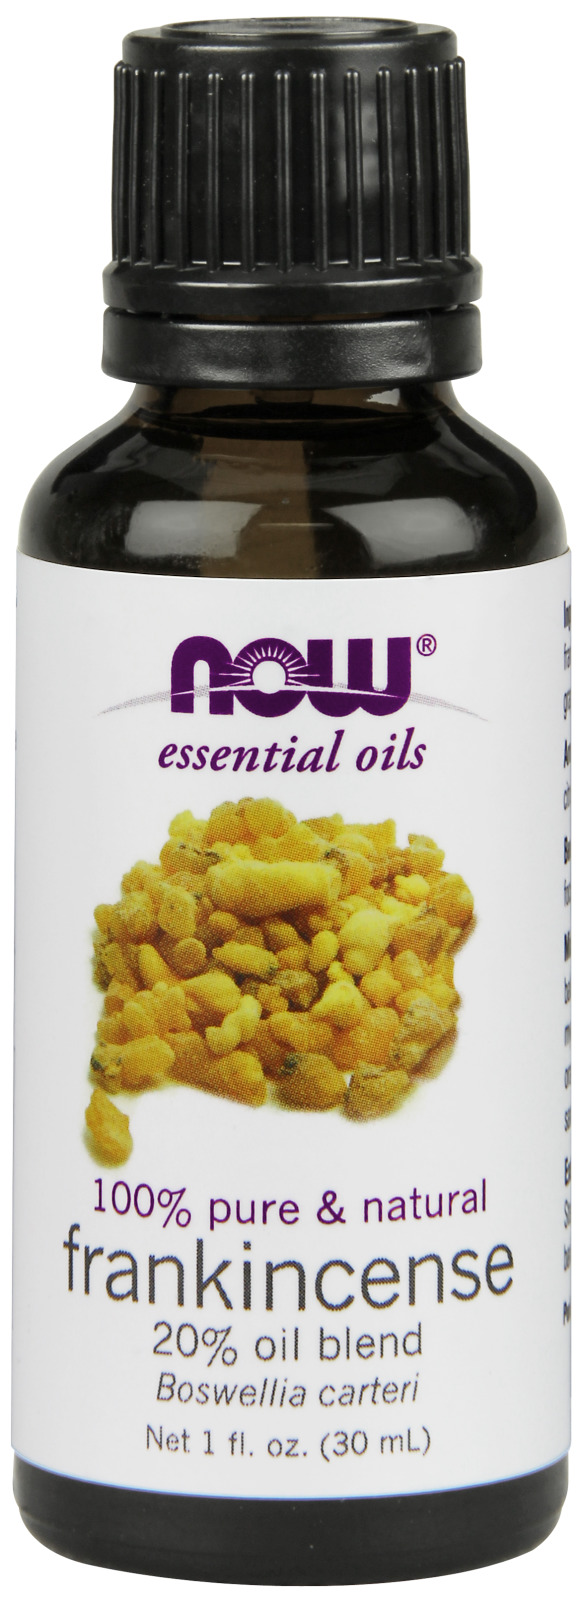 Frankincense Oil Blend 1 fl oz (30 ml) by NOW